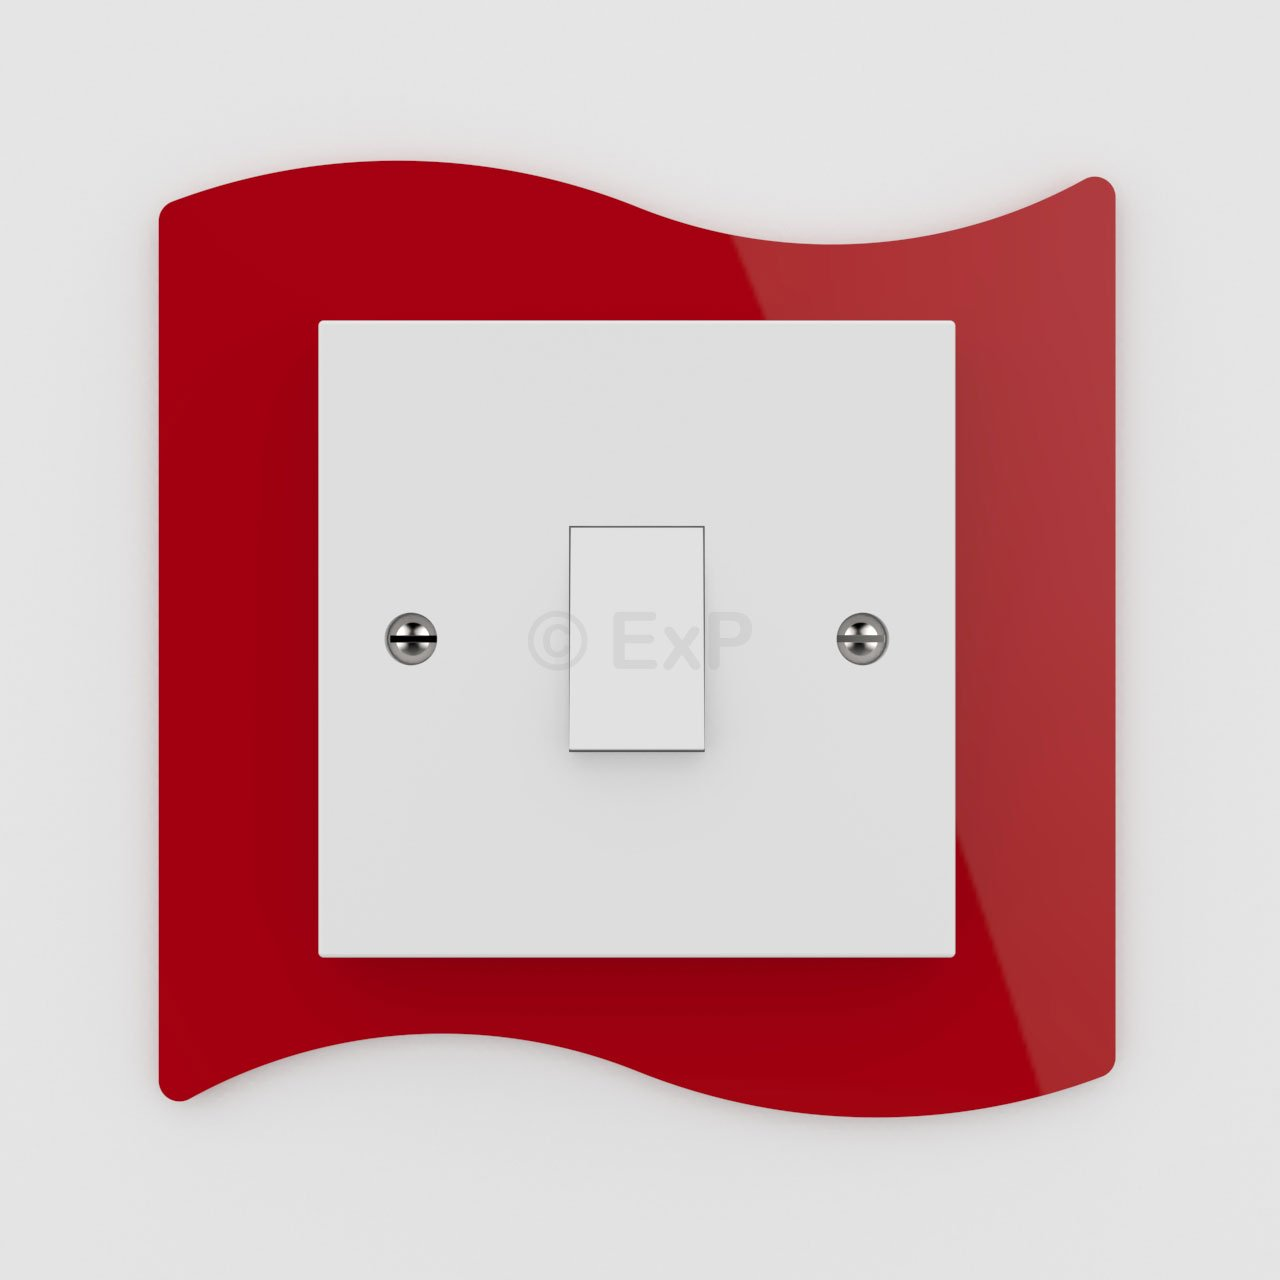 Expression Products Single Light Switch or Plug Socket Back Plate Finger Surround Panel Lime Free Trolley Token Material Sample Included per Shipment